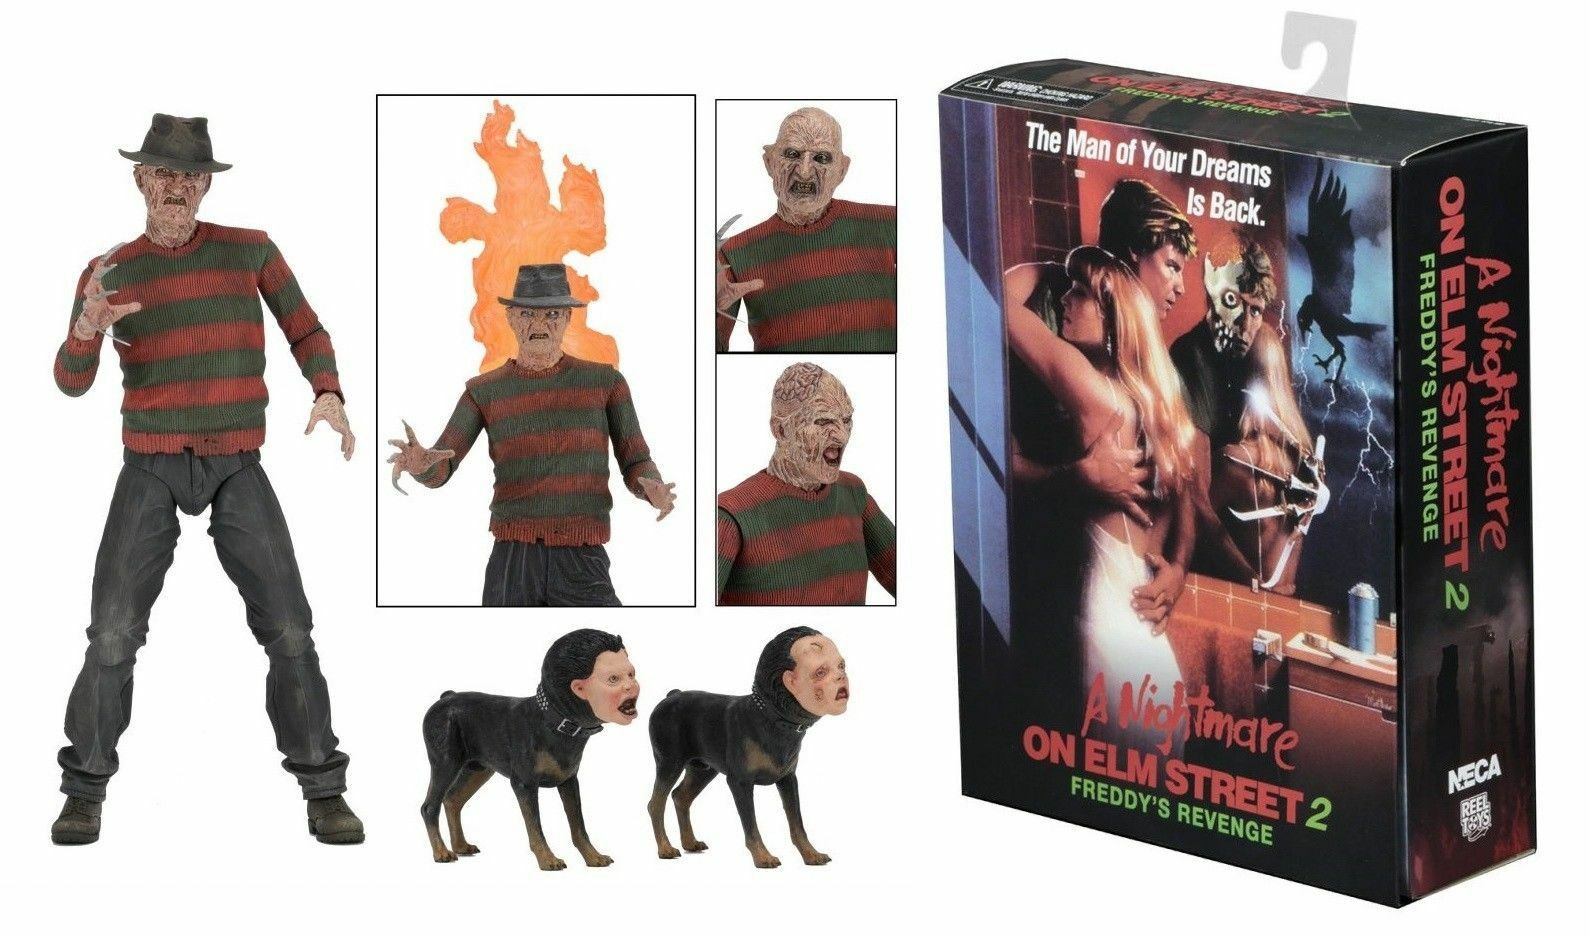 NECA Nightmare on Elm Street Part 2 Ultimate Frotdy 7  figure (Frotdy's Revenge)